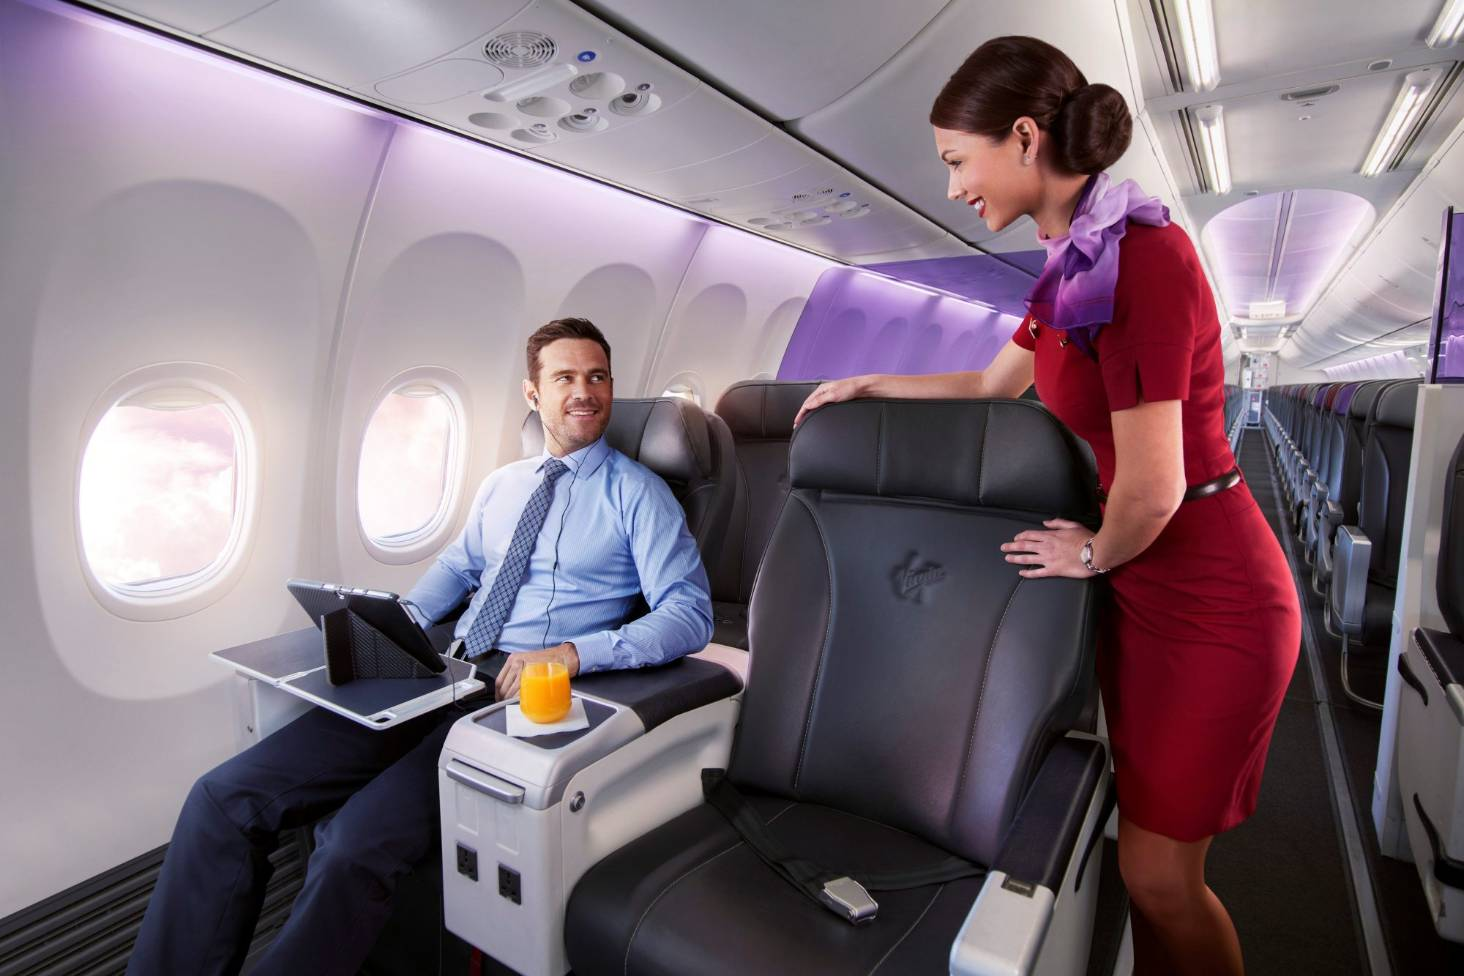 Flight test: Brisbane to Christchurch with Virgin Australia | Stuff